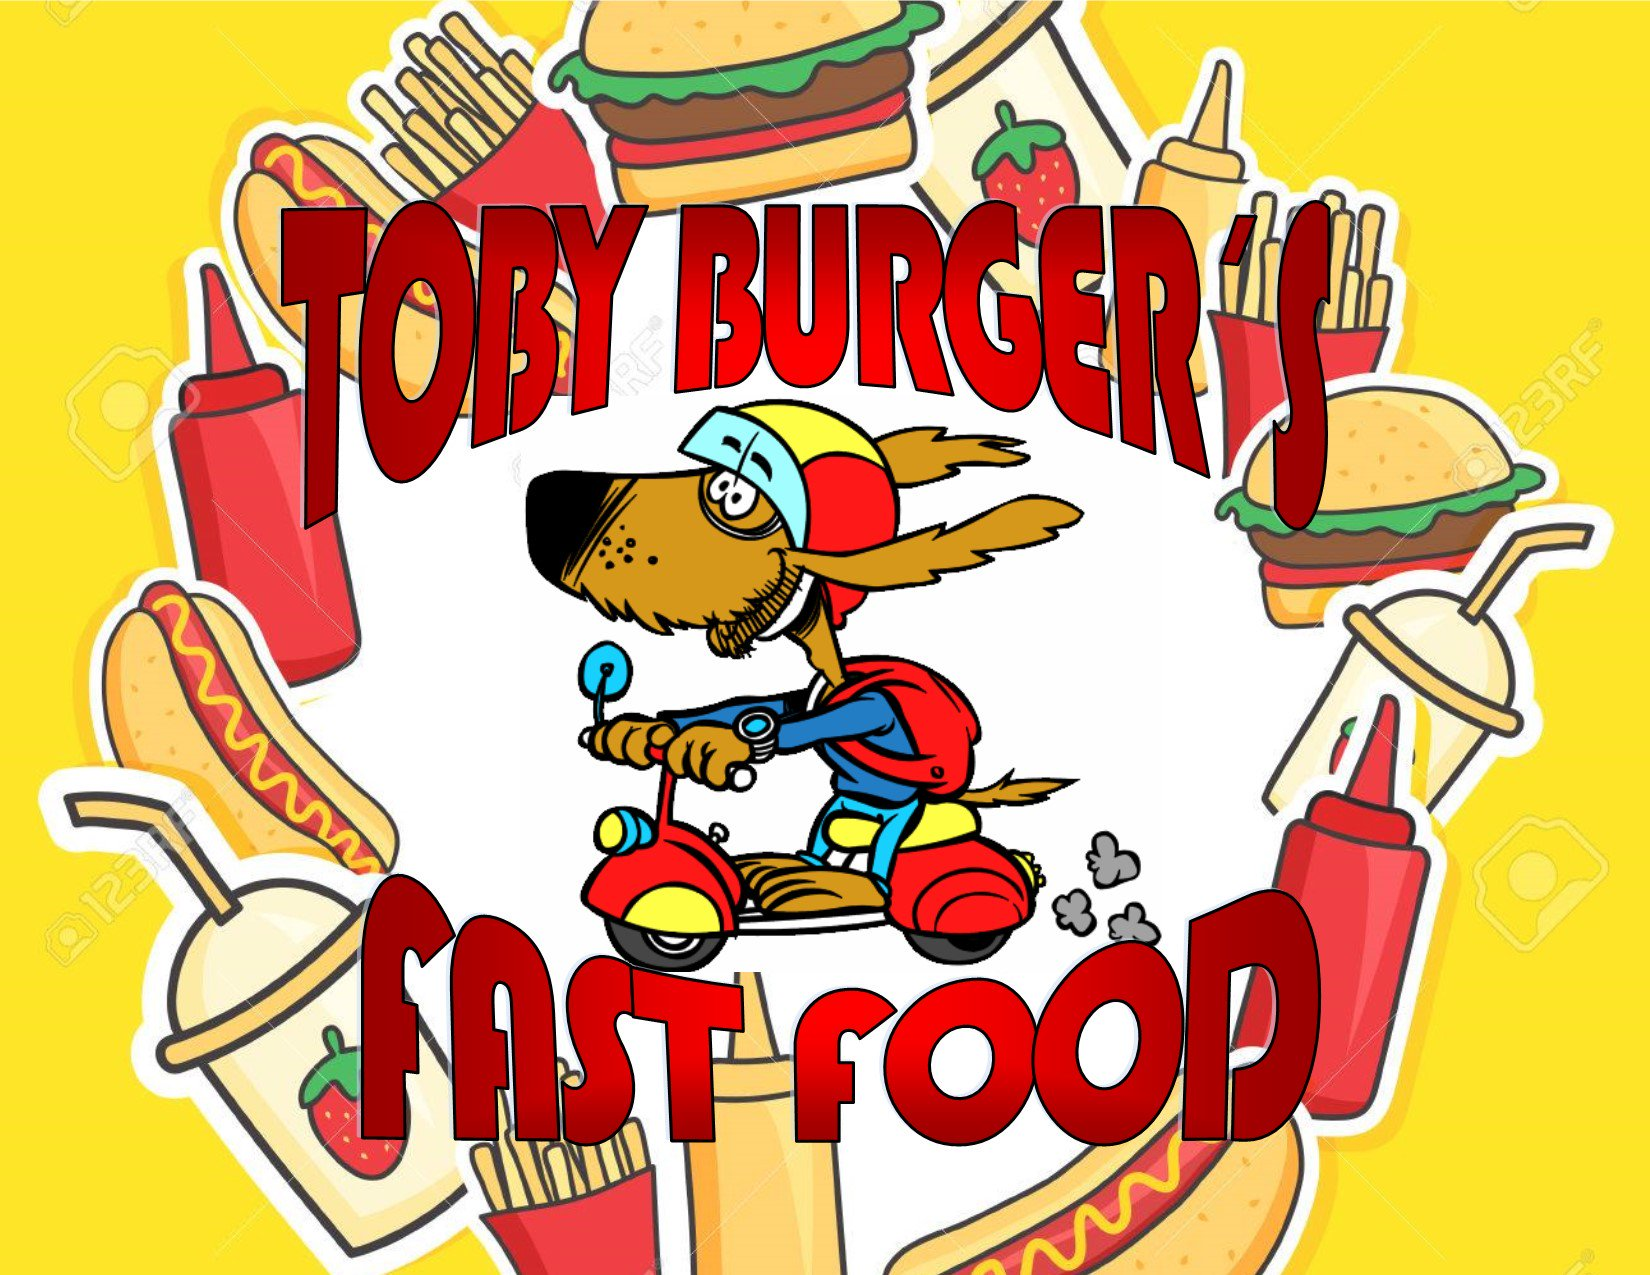 Toby Burger